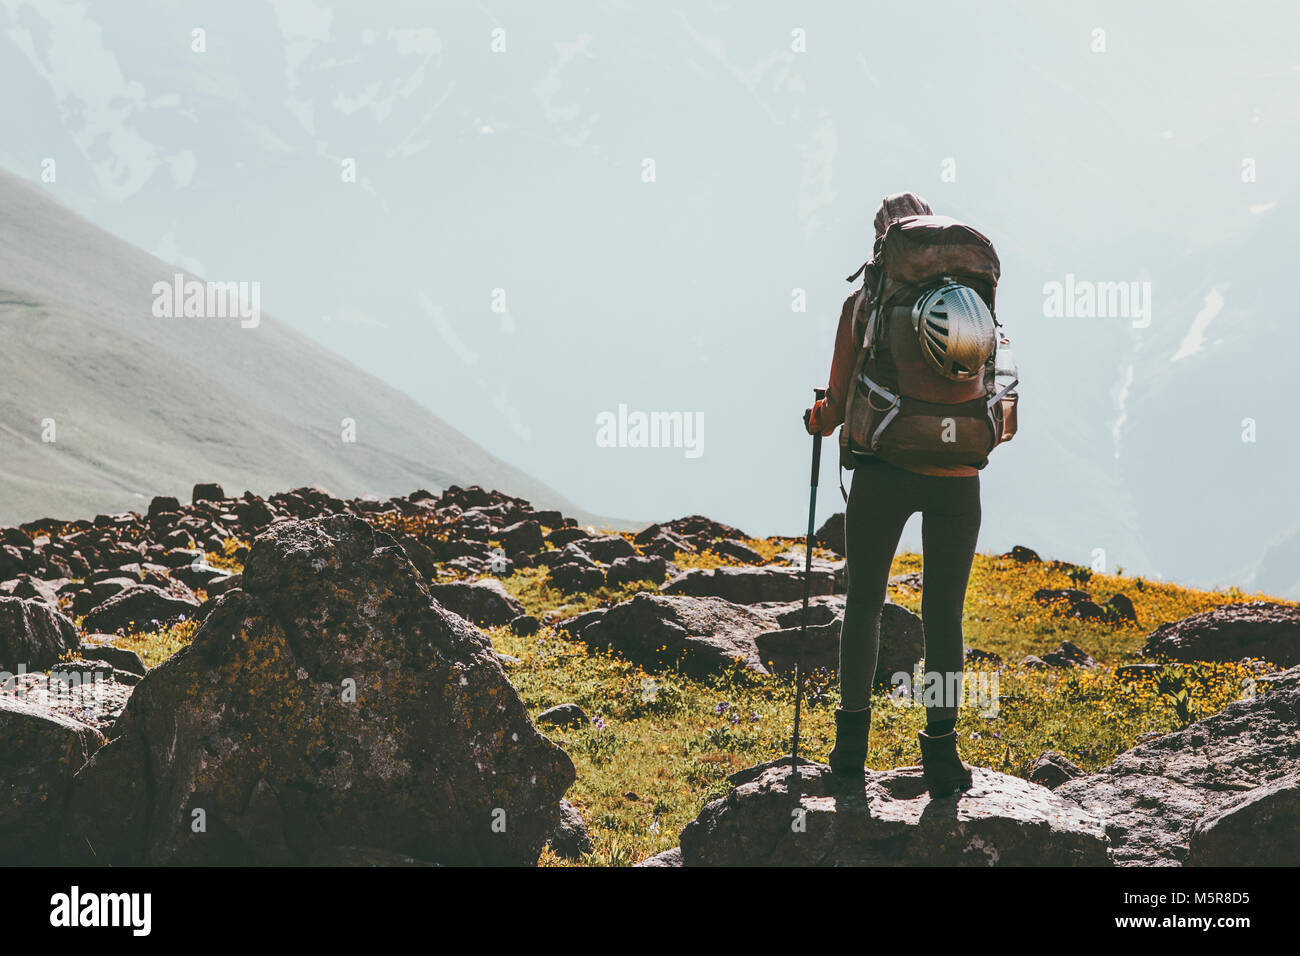 Adventure Travel vacations in mountains woman hiking with backpack healthy lifestyle concept outdoor mountaineering - Stock Image